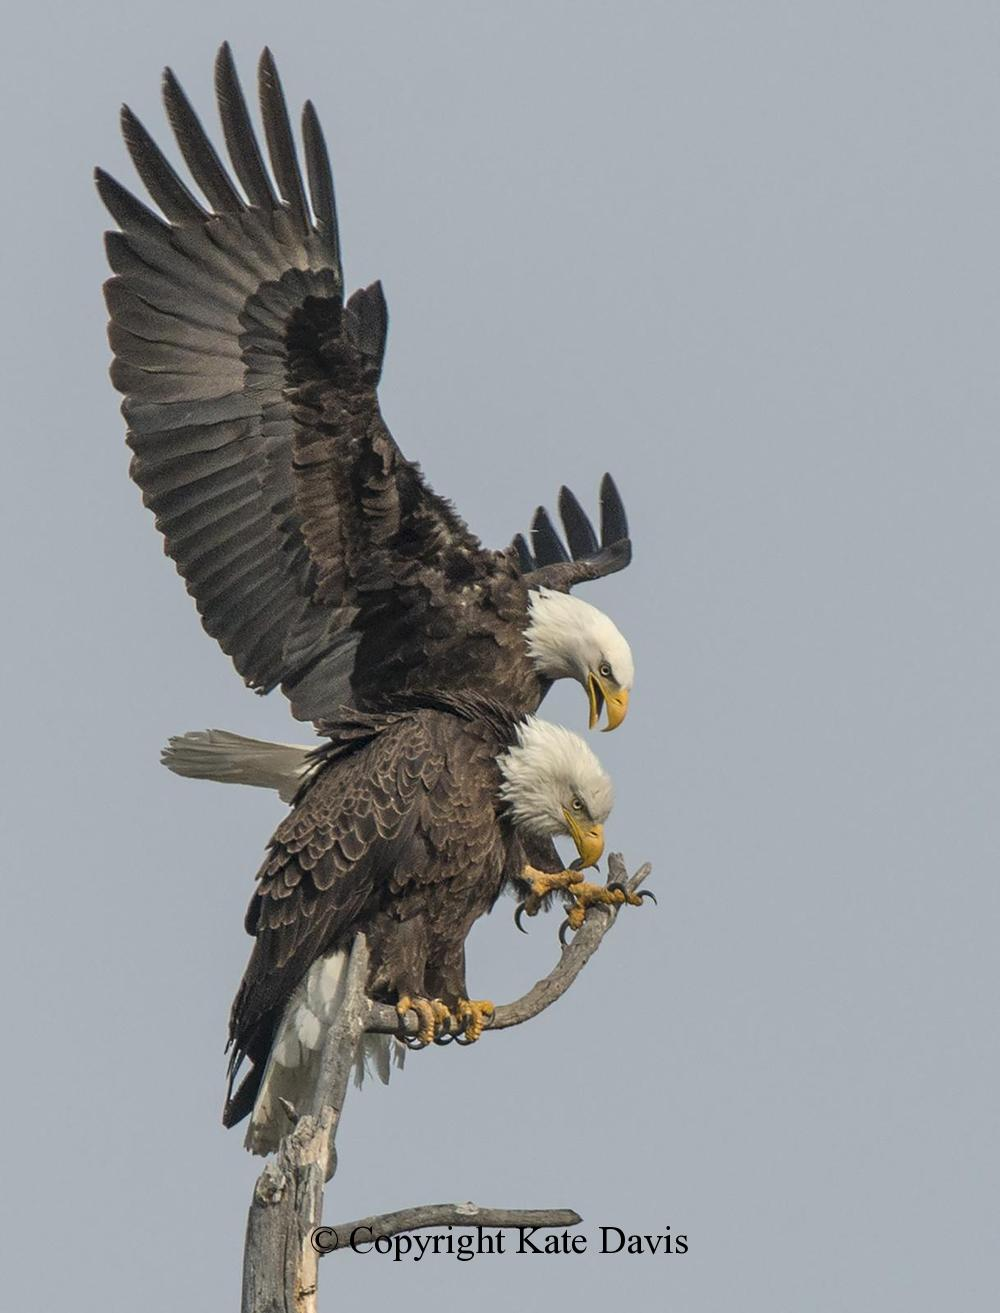 American Bald Eagle - Favorite of the Year - Golden Eagle - Bald Eagles - favorite photo of the year 2015